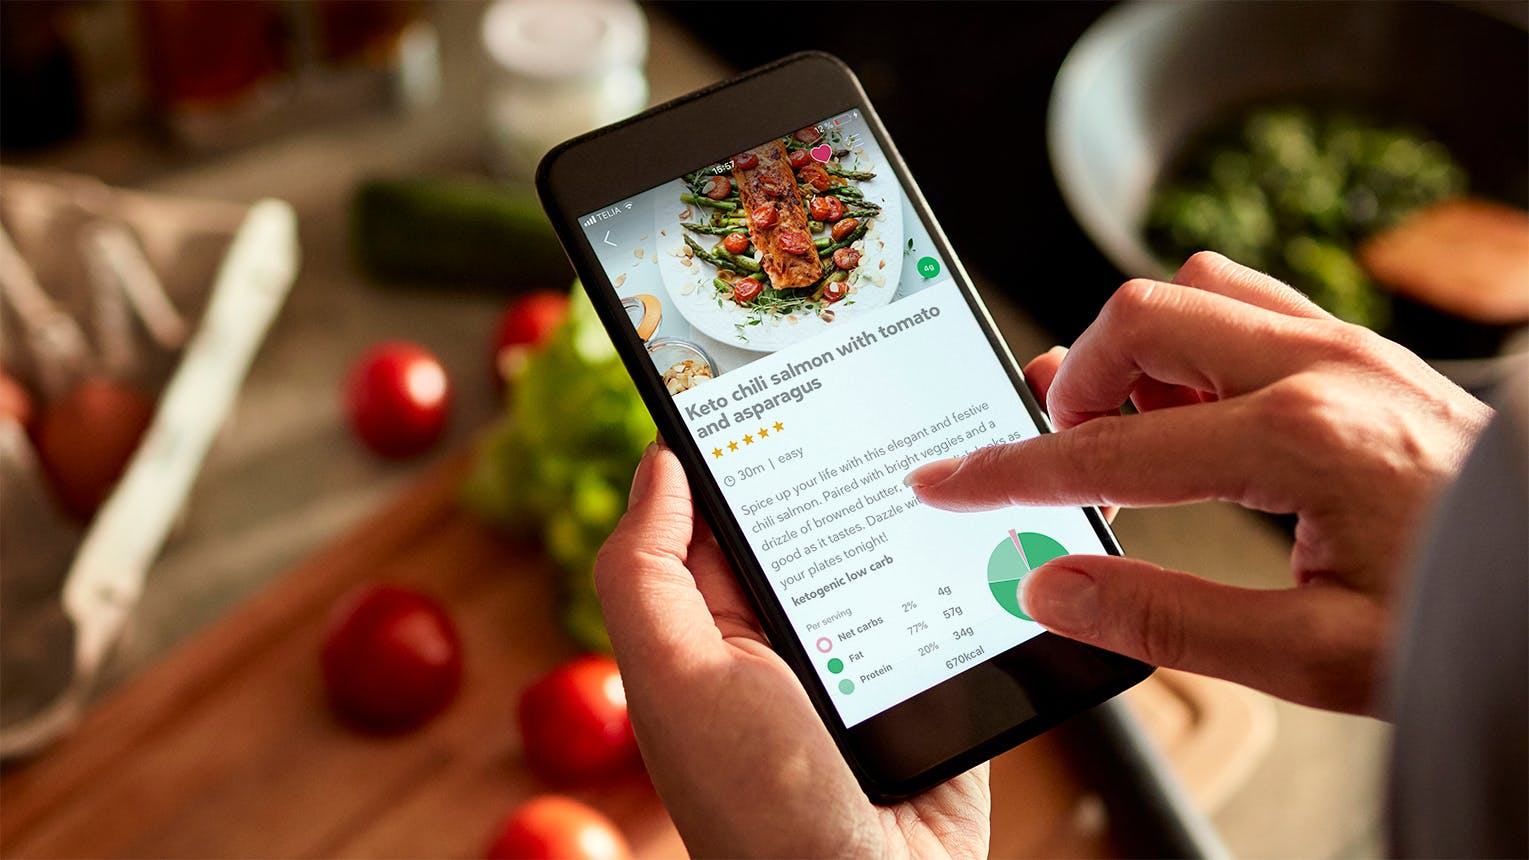 We just launched our first app: DietDoctorEat!